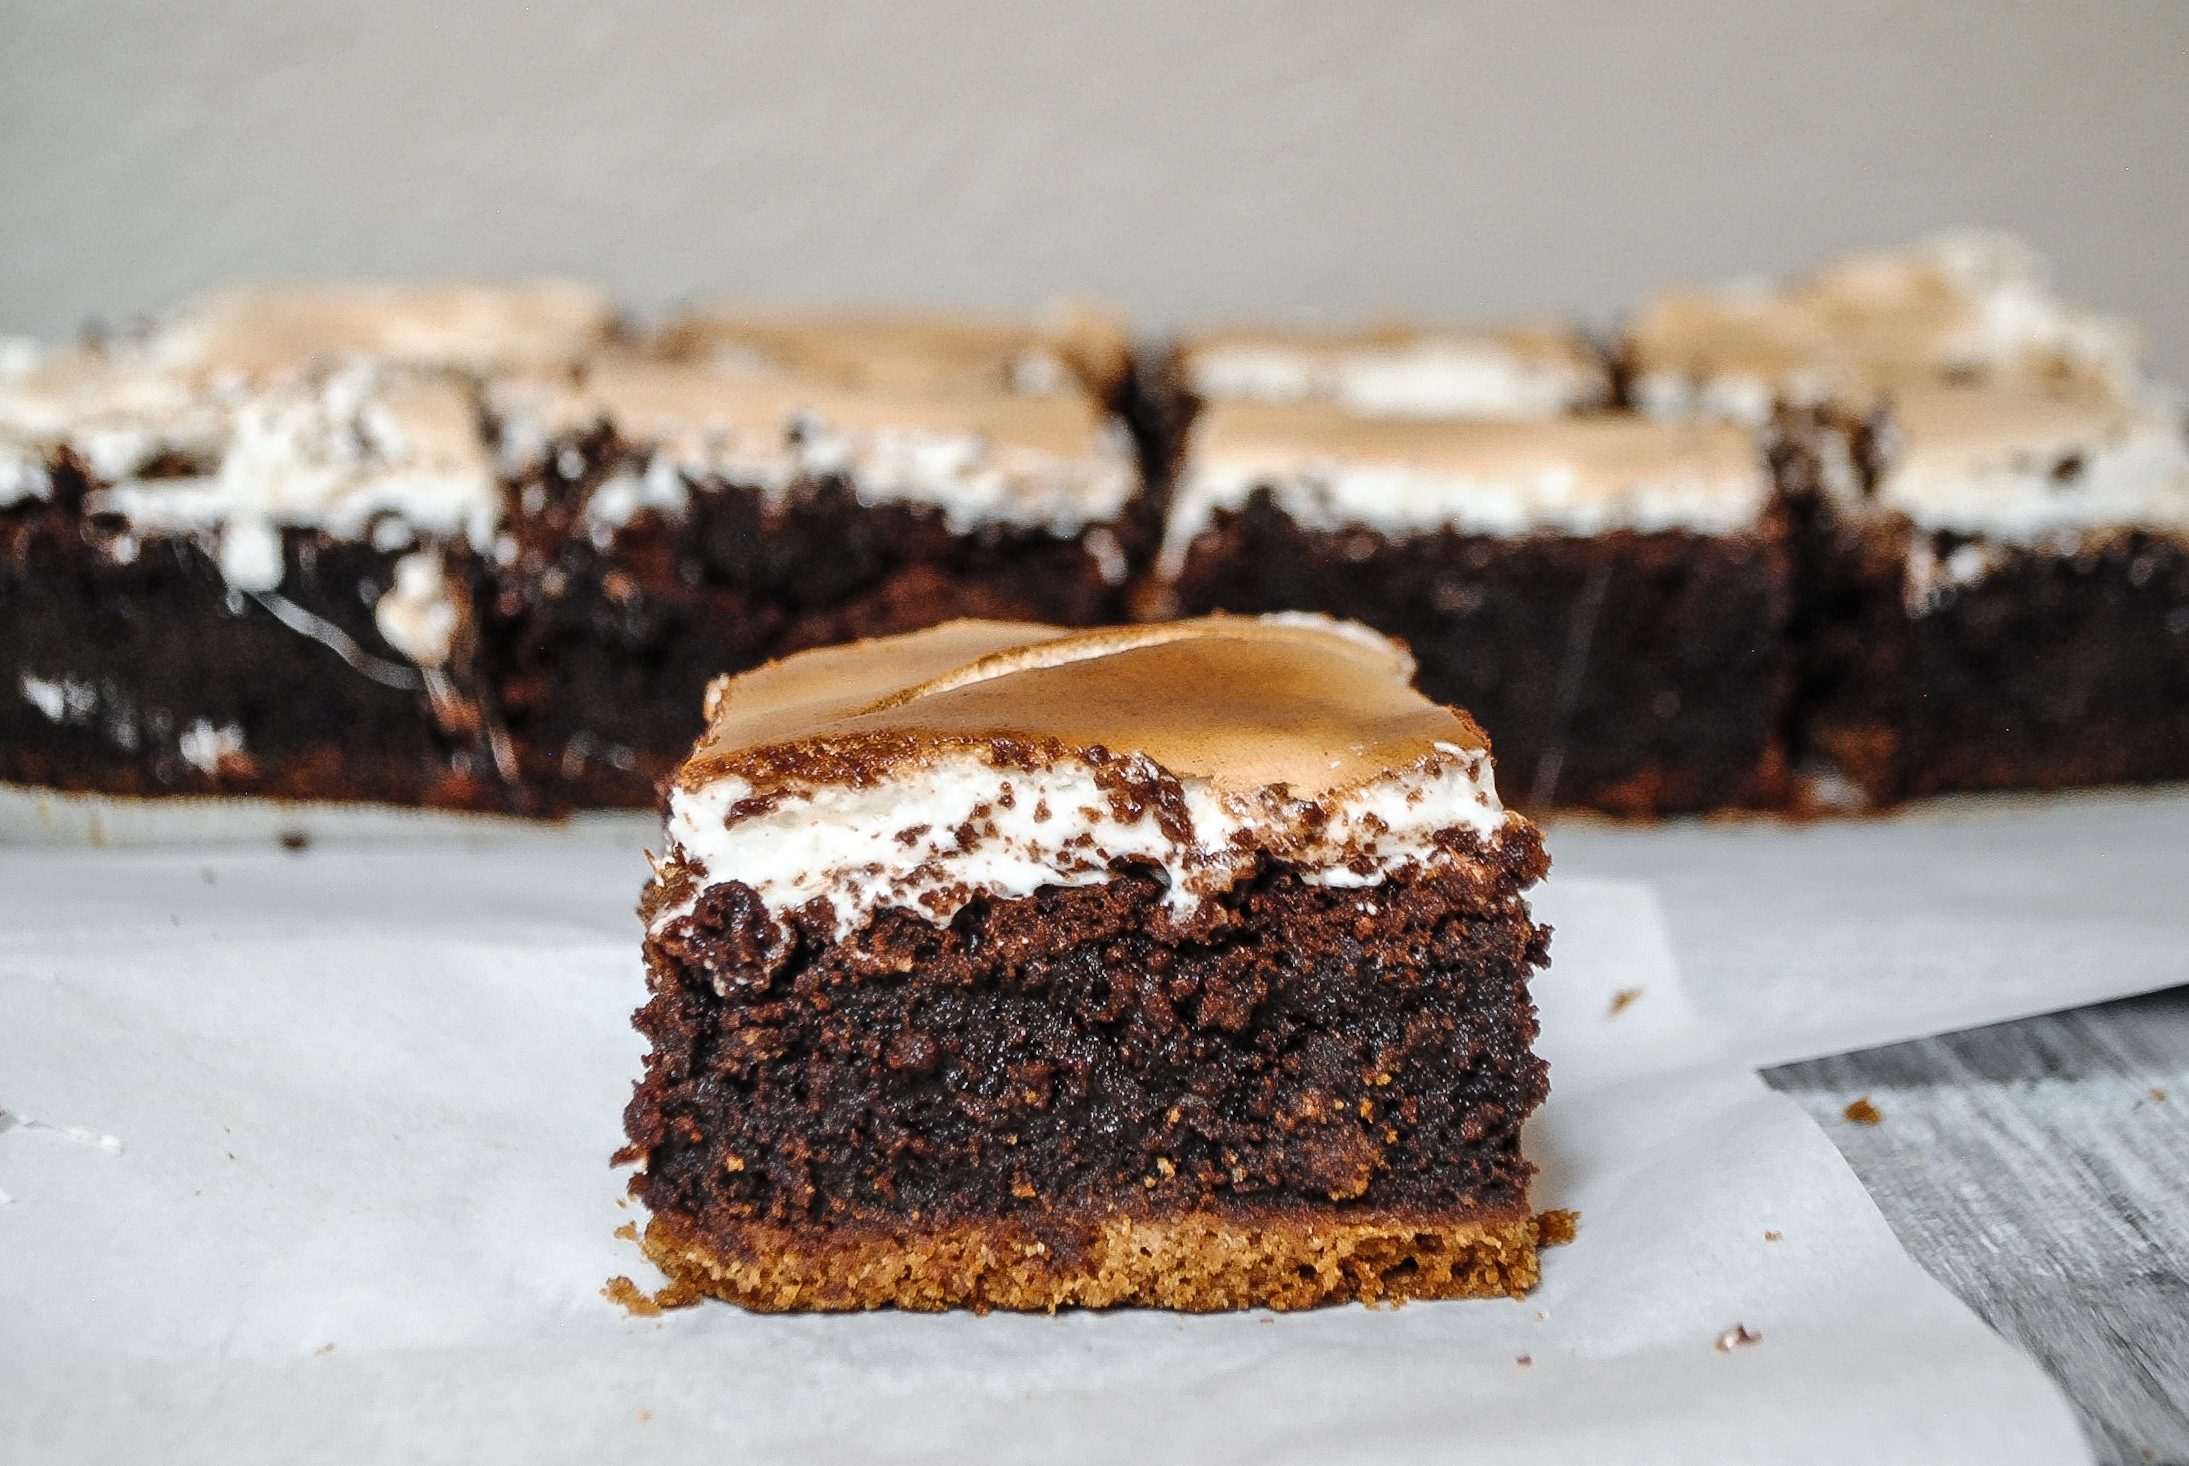 Ultimate S'mores Brownie | Blessings + Good Food